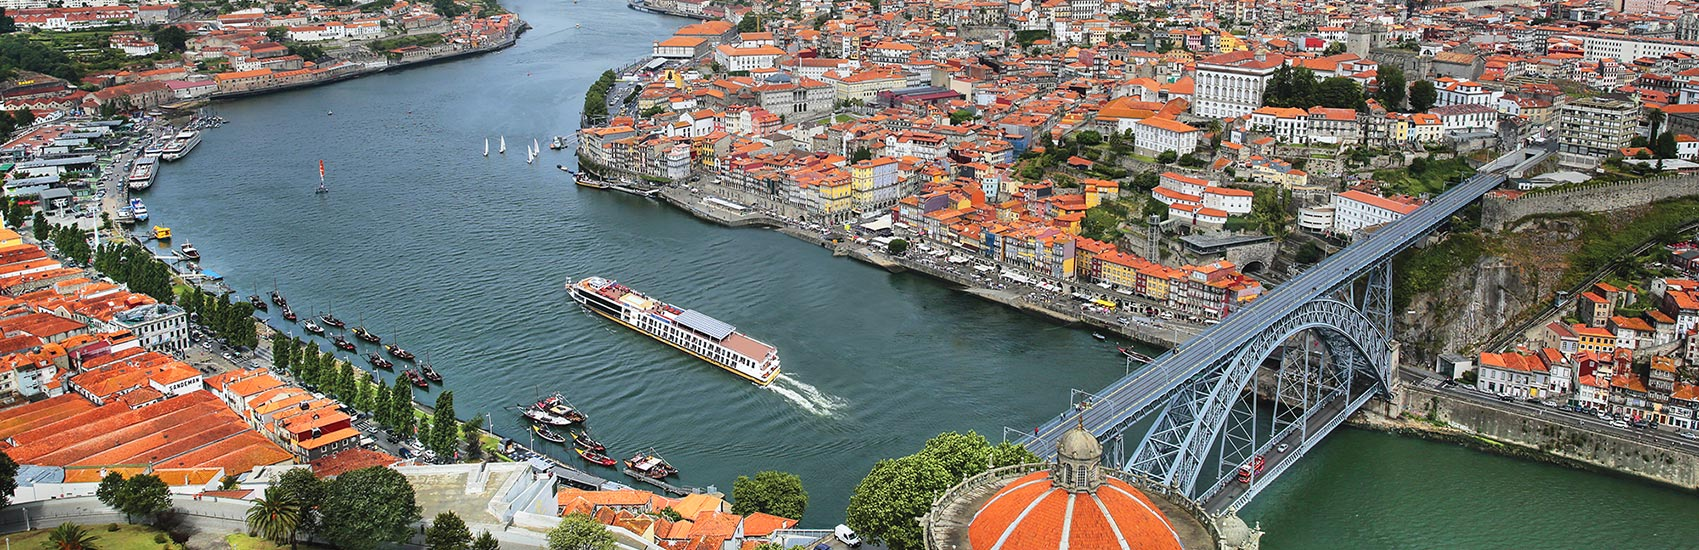 Exclusive 2-for-1 Cruise Savings on Select European River Cruises 4